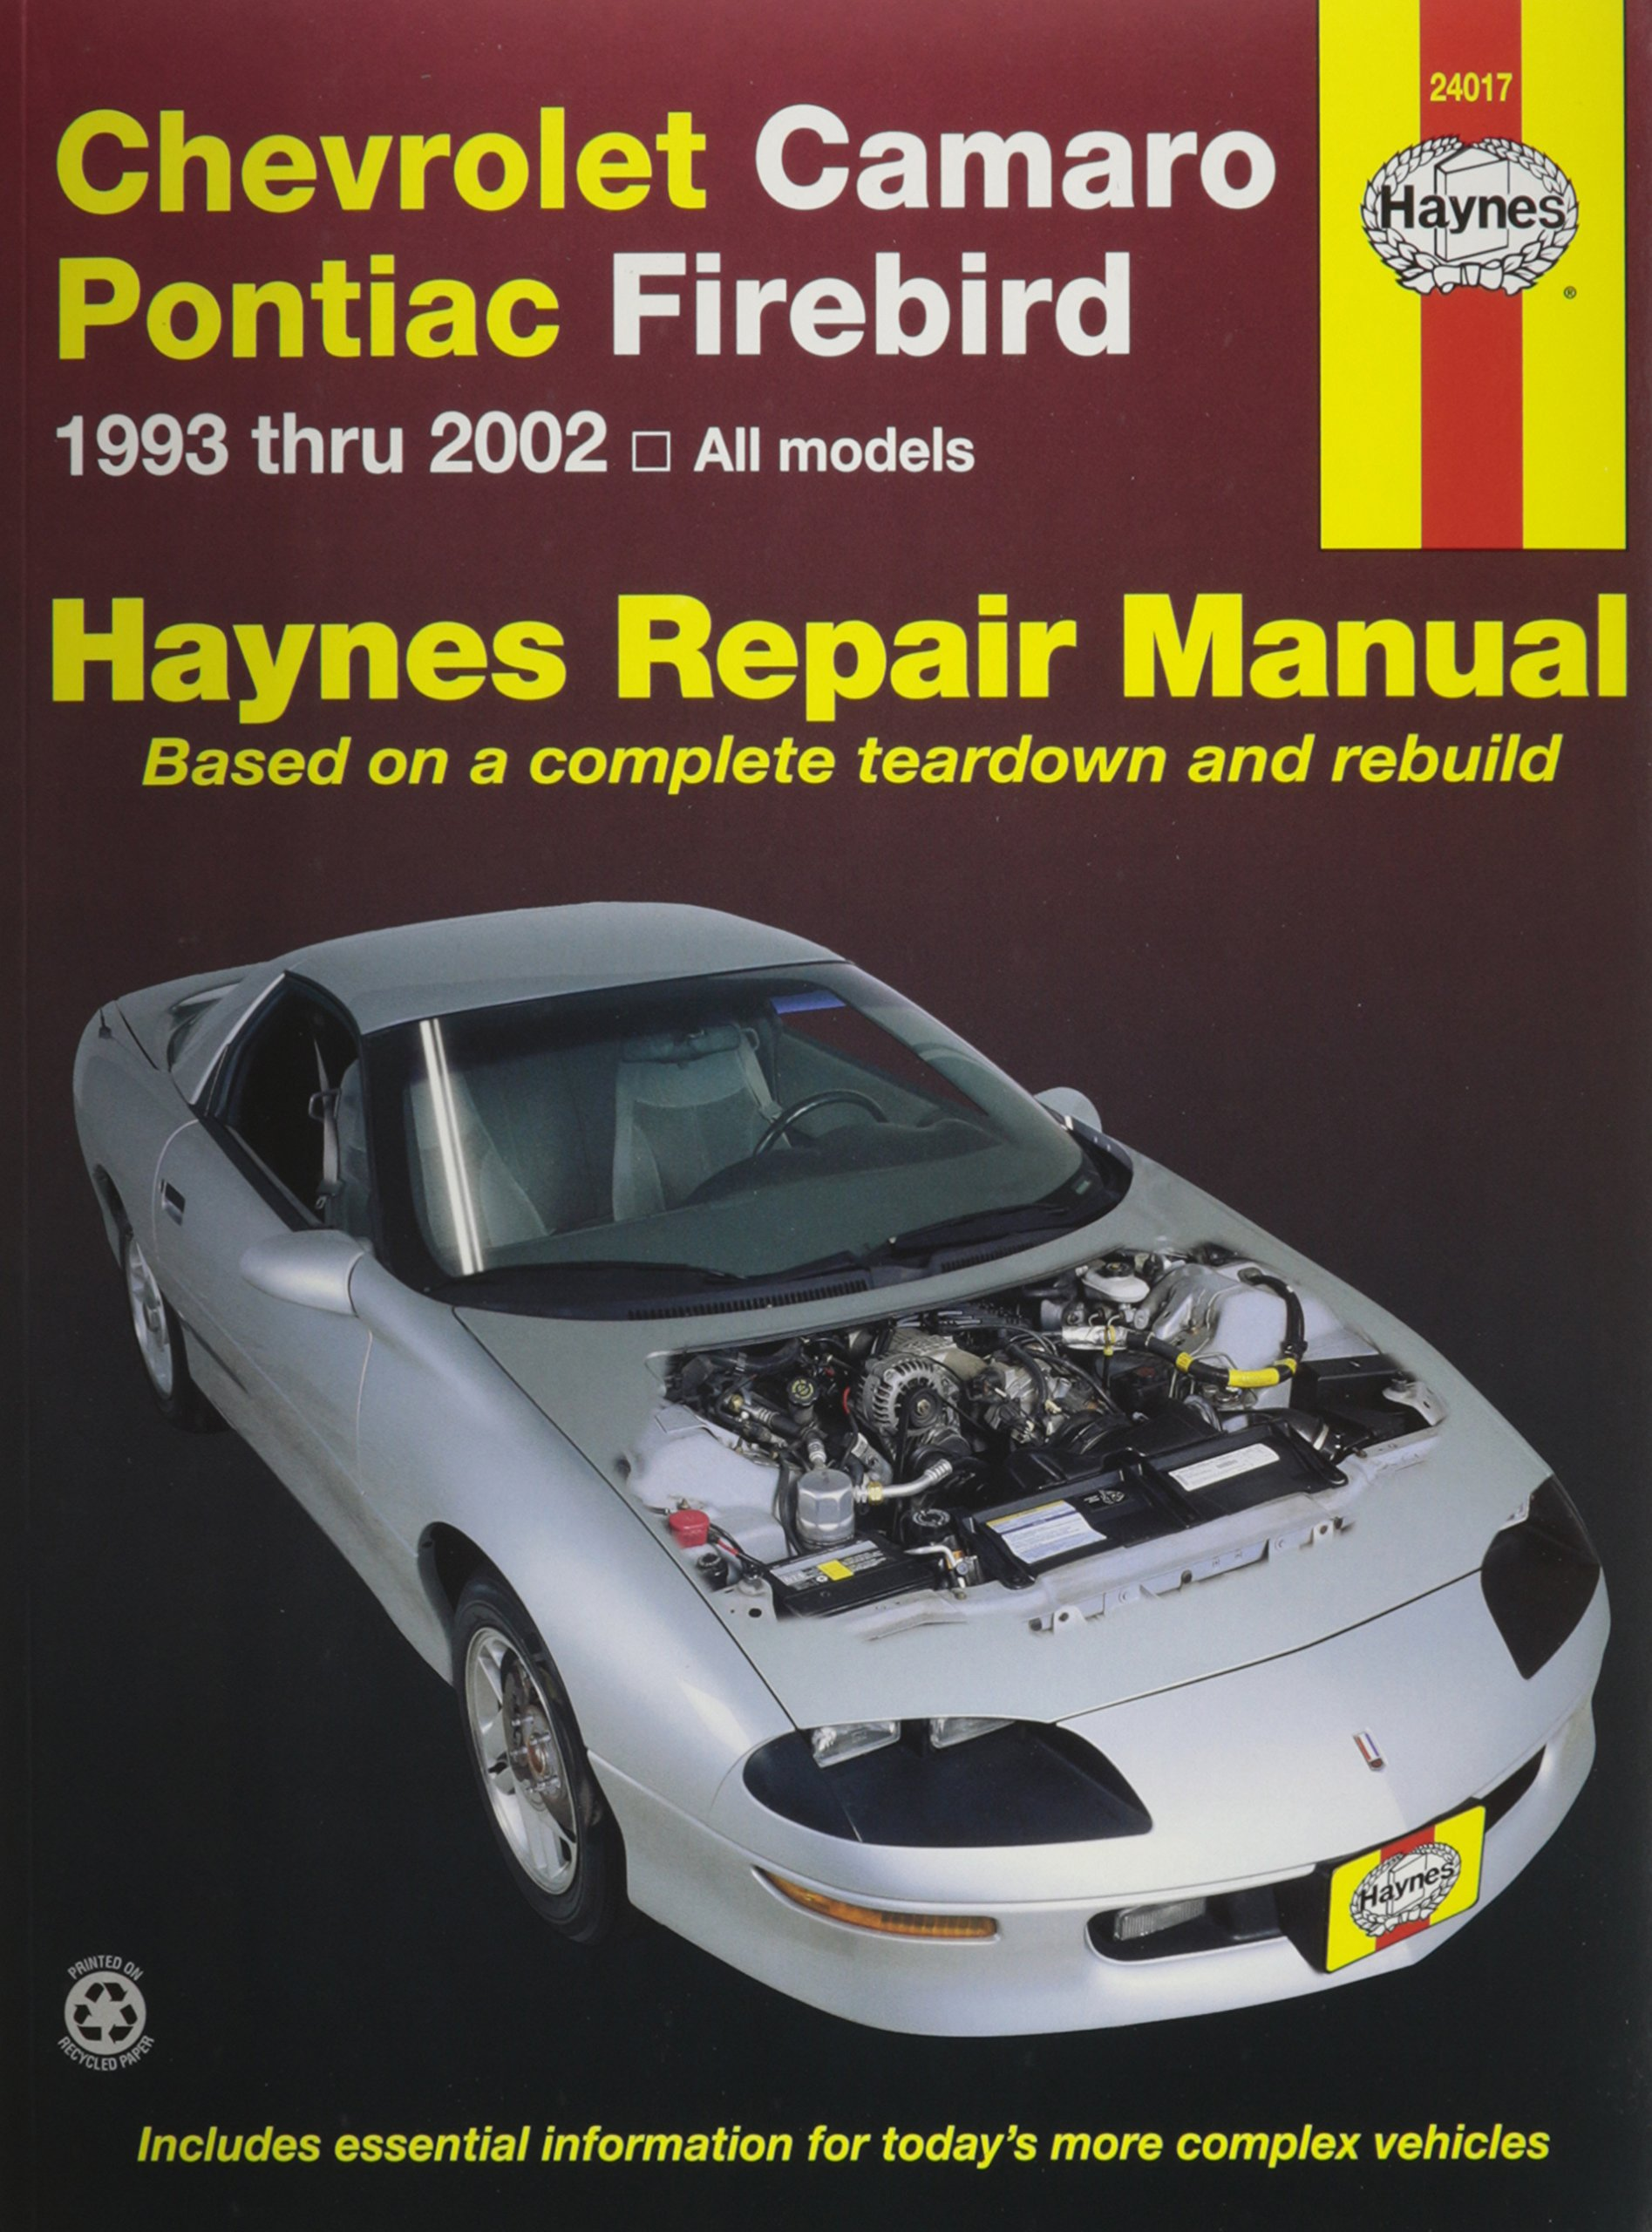 amazon com haynes repair manual for camaro firebird number 24017 rh amazon com